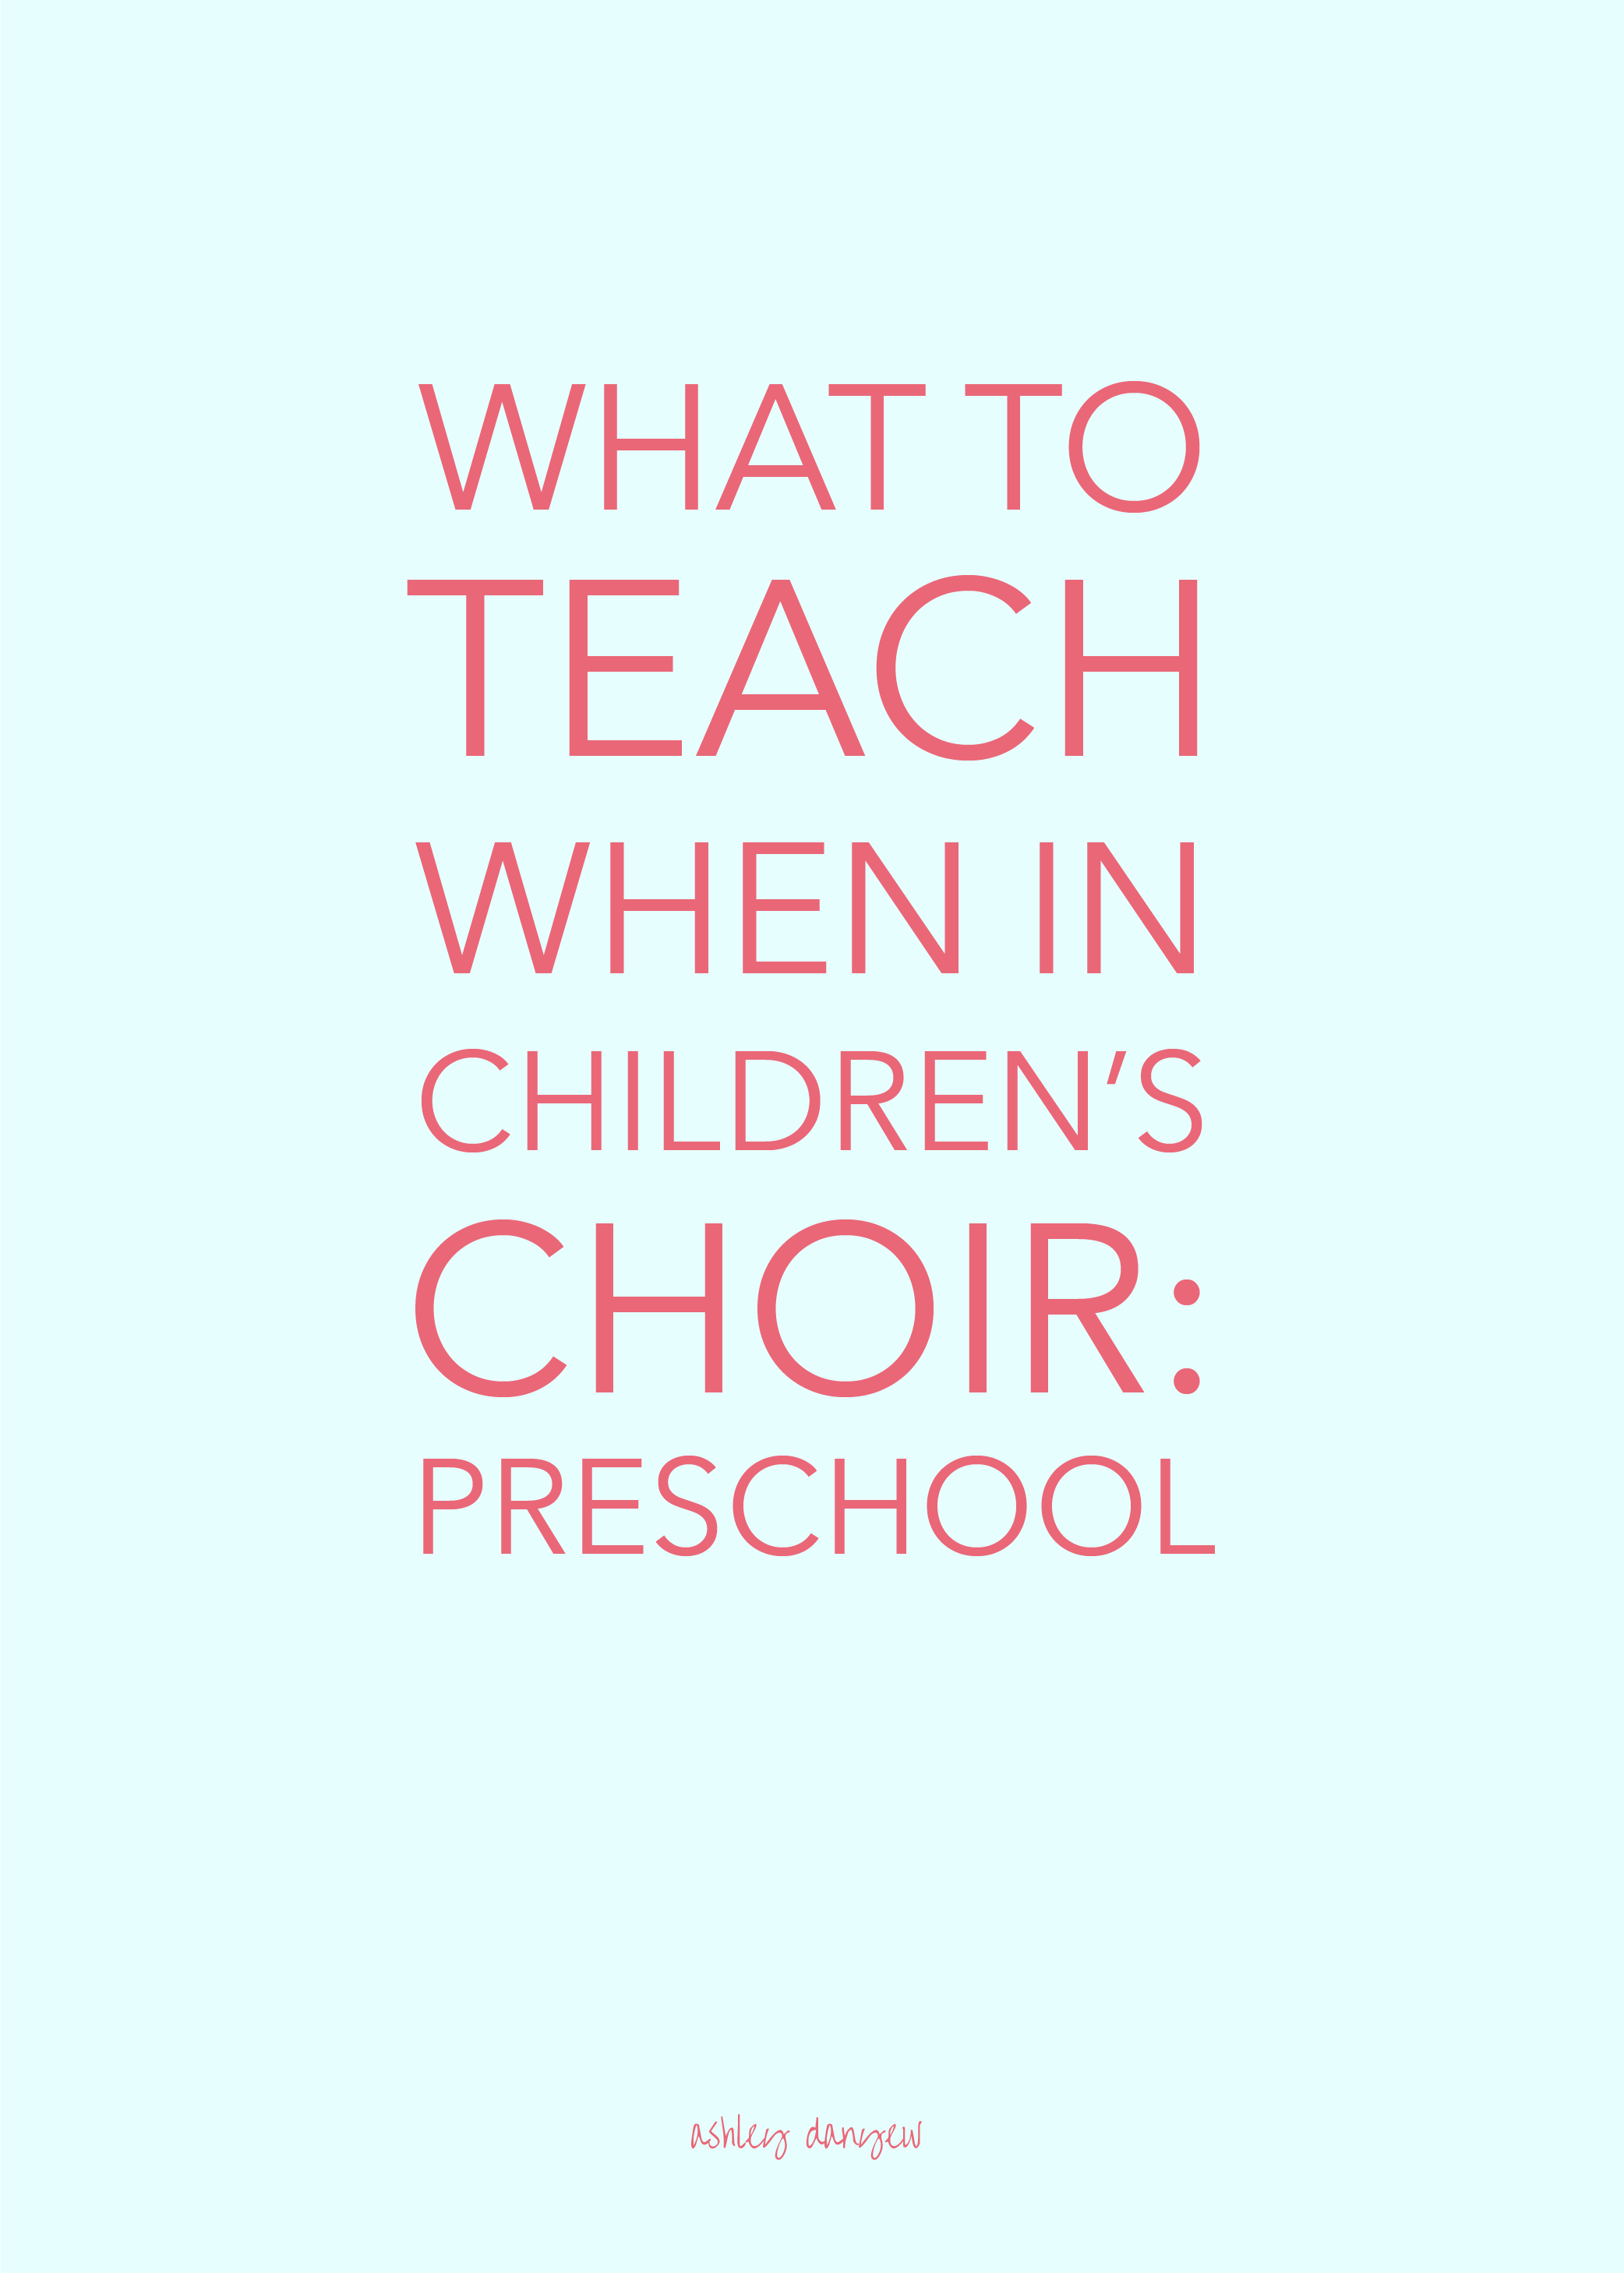 What to Teach When in Children's Choir - Preschool-52.png